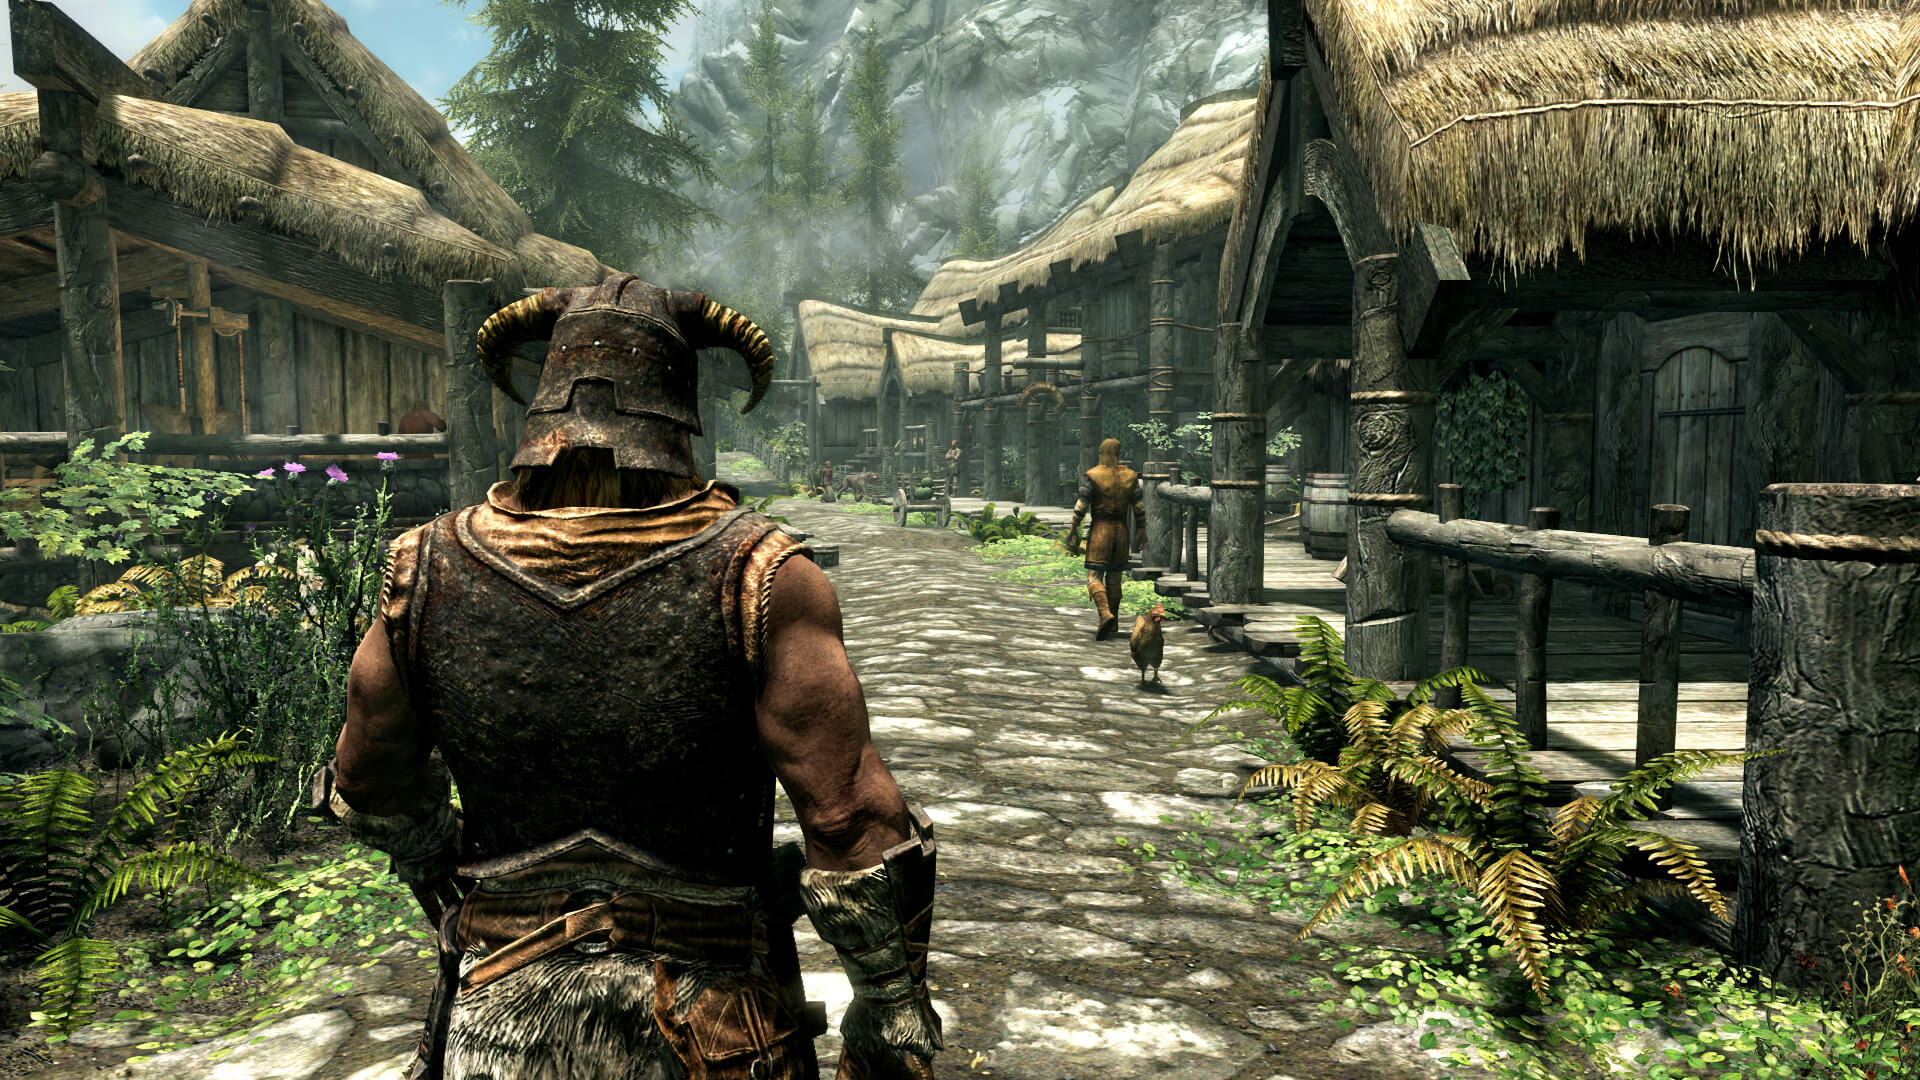 Upon release, Skyrim had a lot of bugs